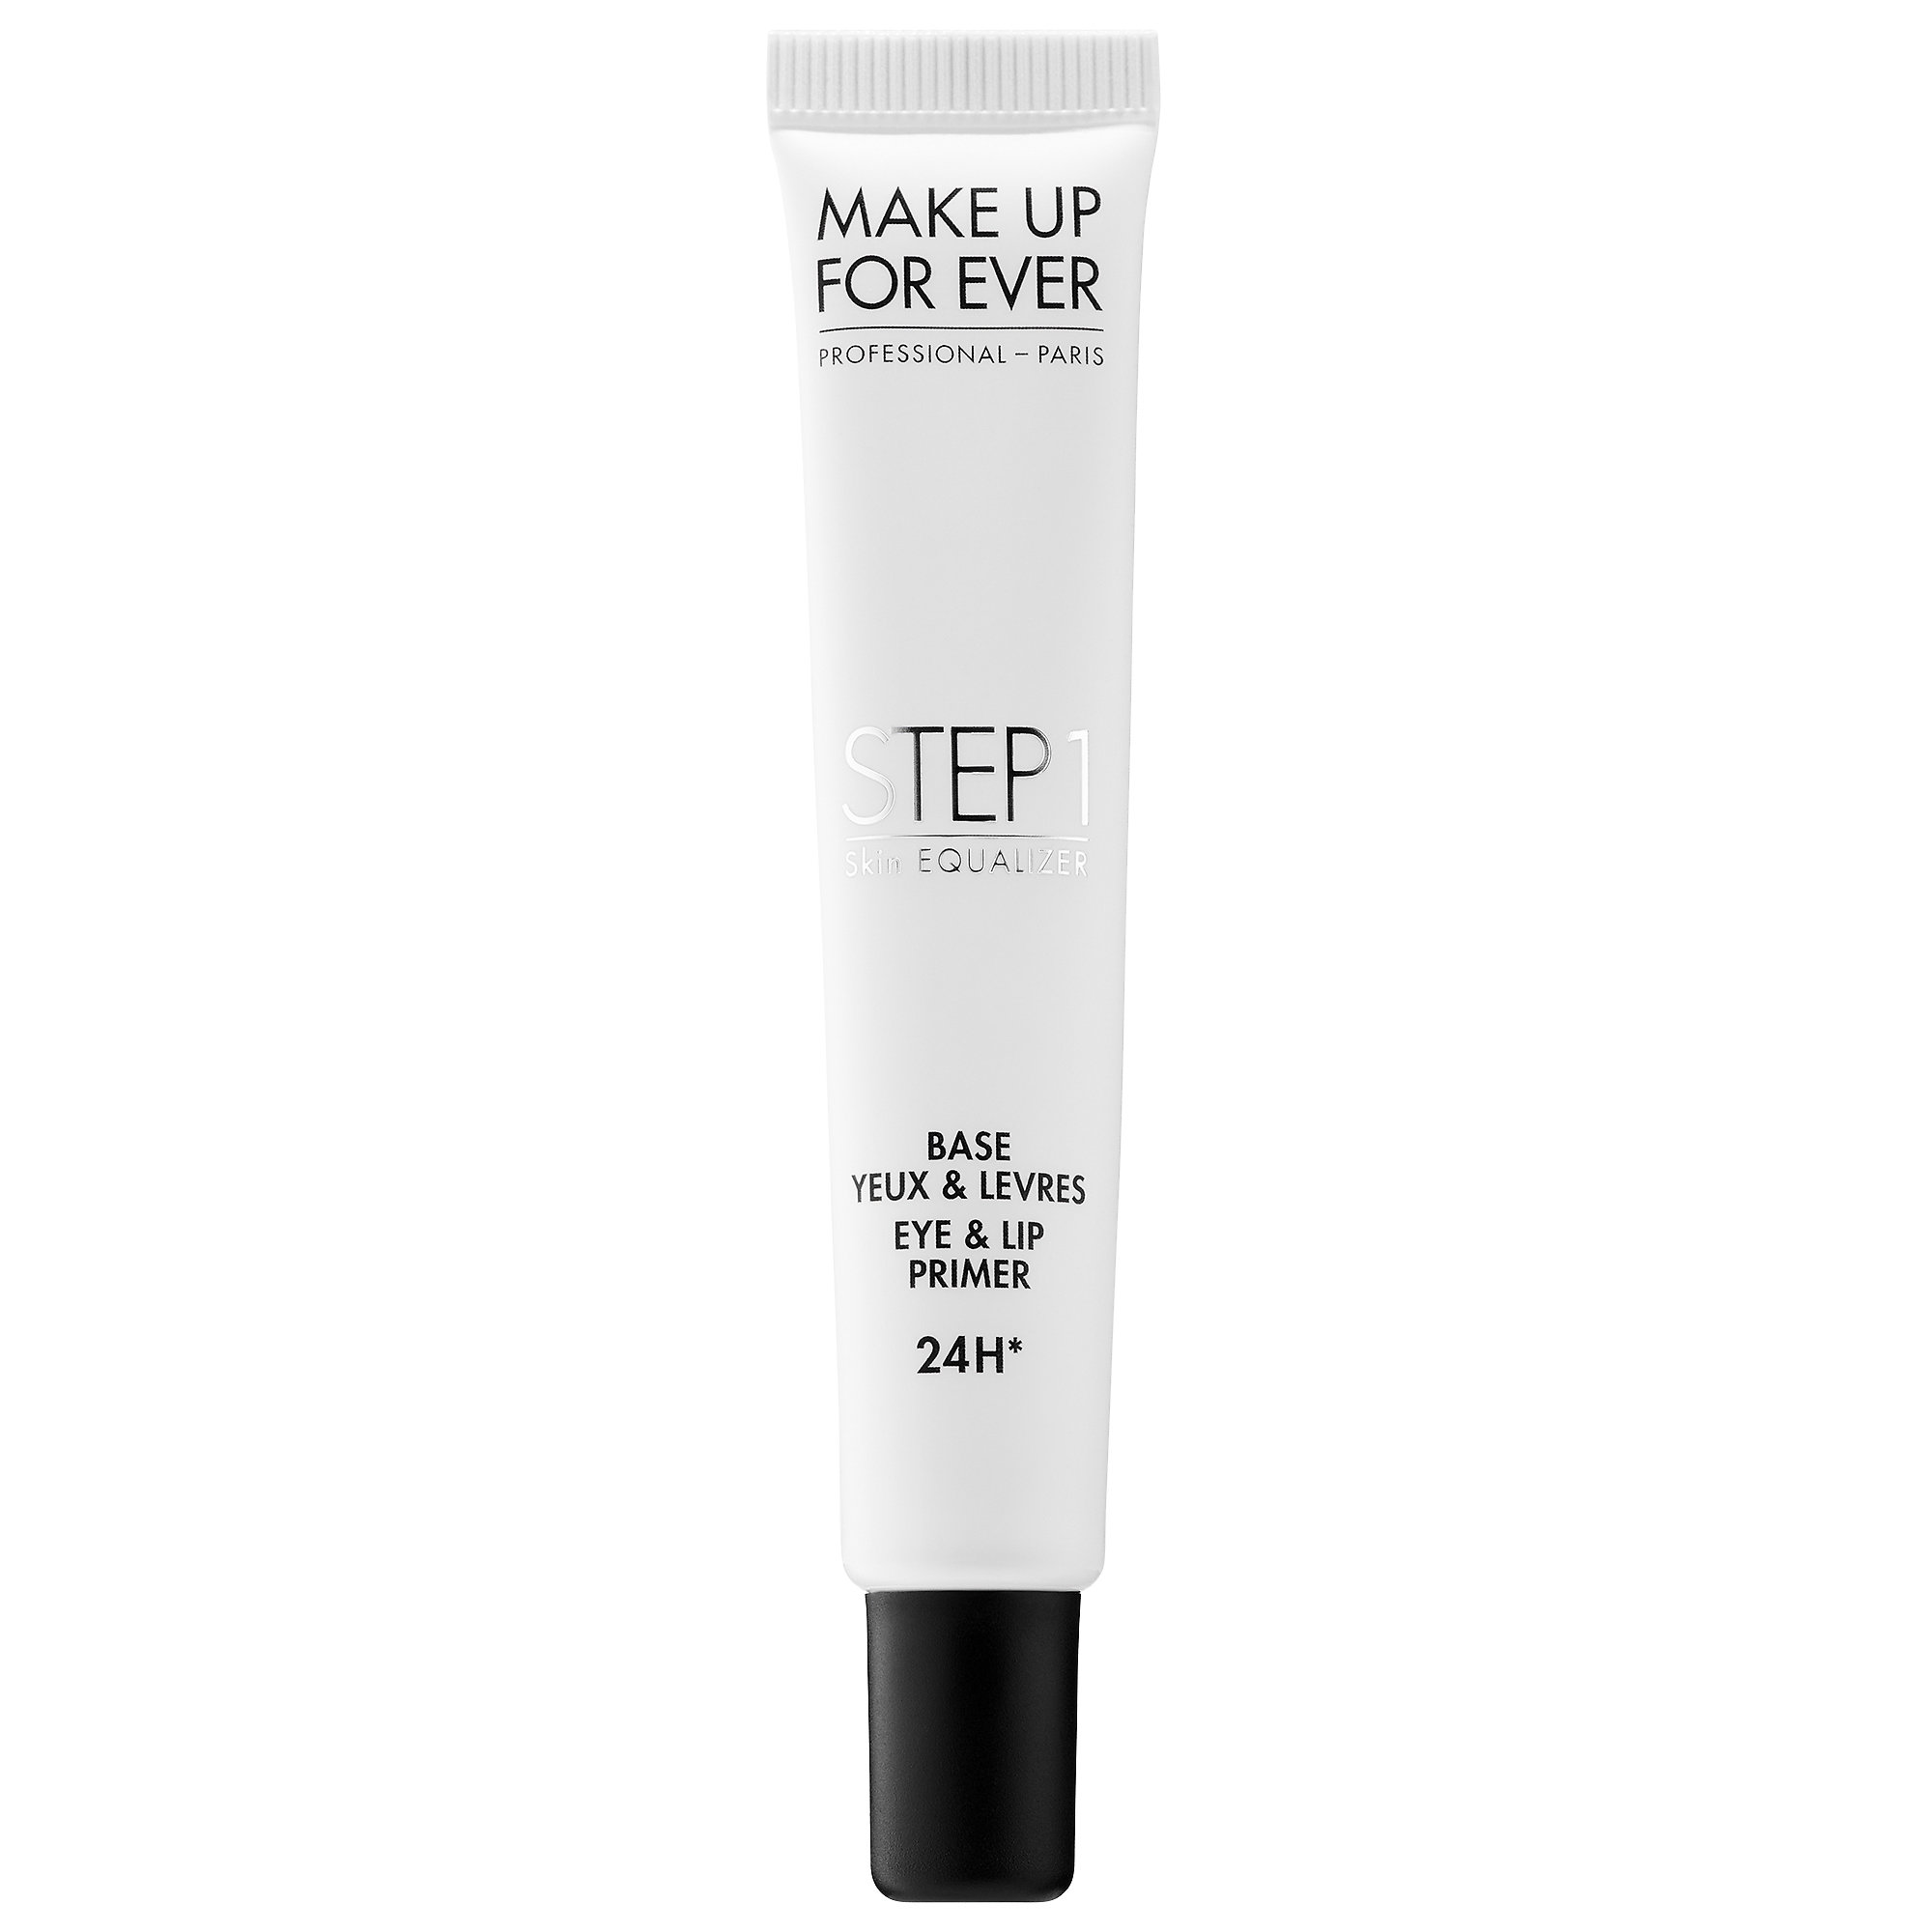 Make Up For Ever released a primer that works for both your eyes and lips